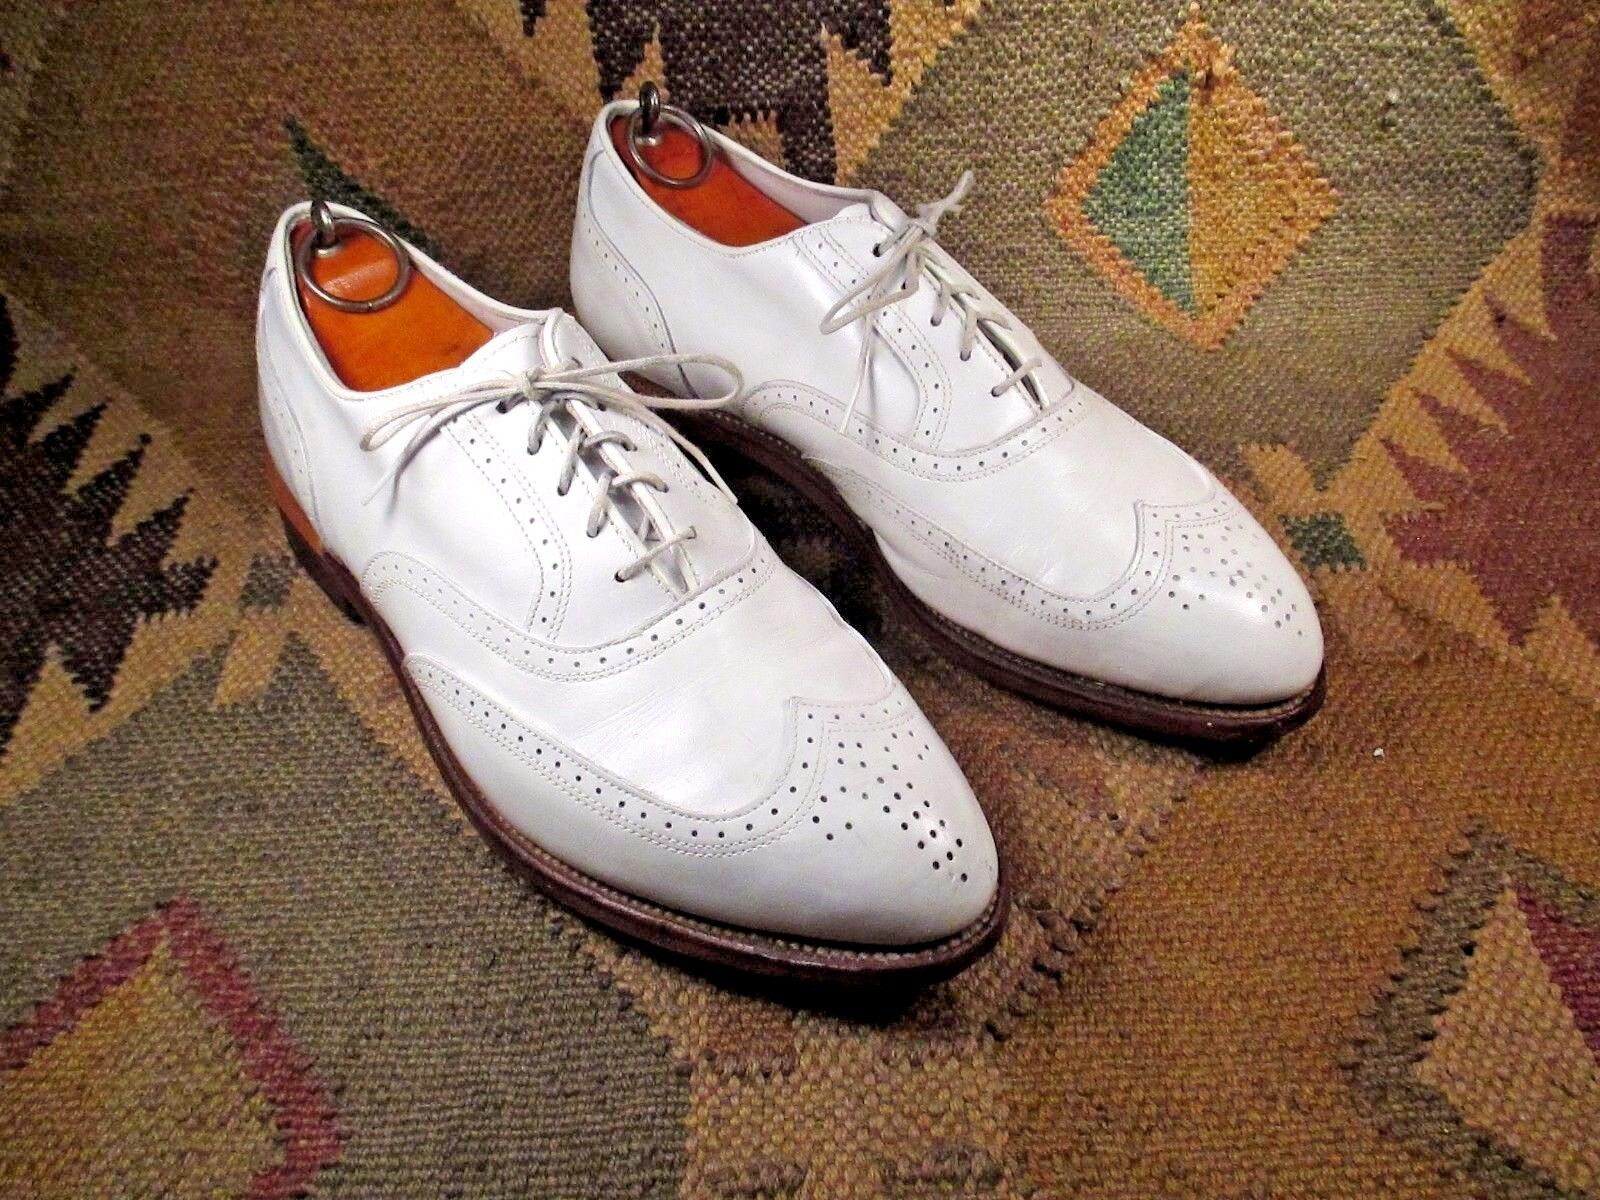 b8c3dfe3070a6 Etonic the ULTIMATE White Leather Wingtip Golf Shoe Size USA-9 D ...